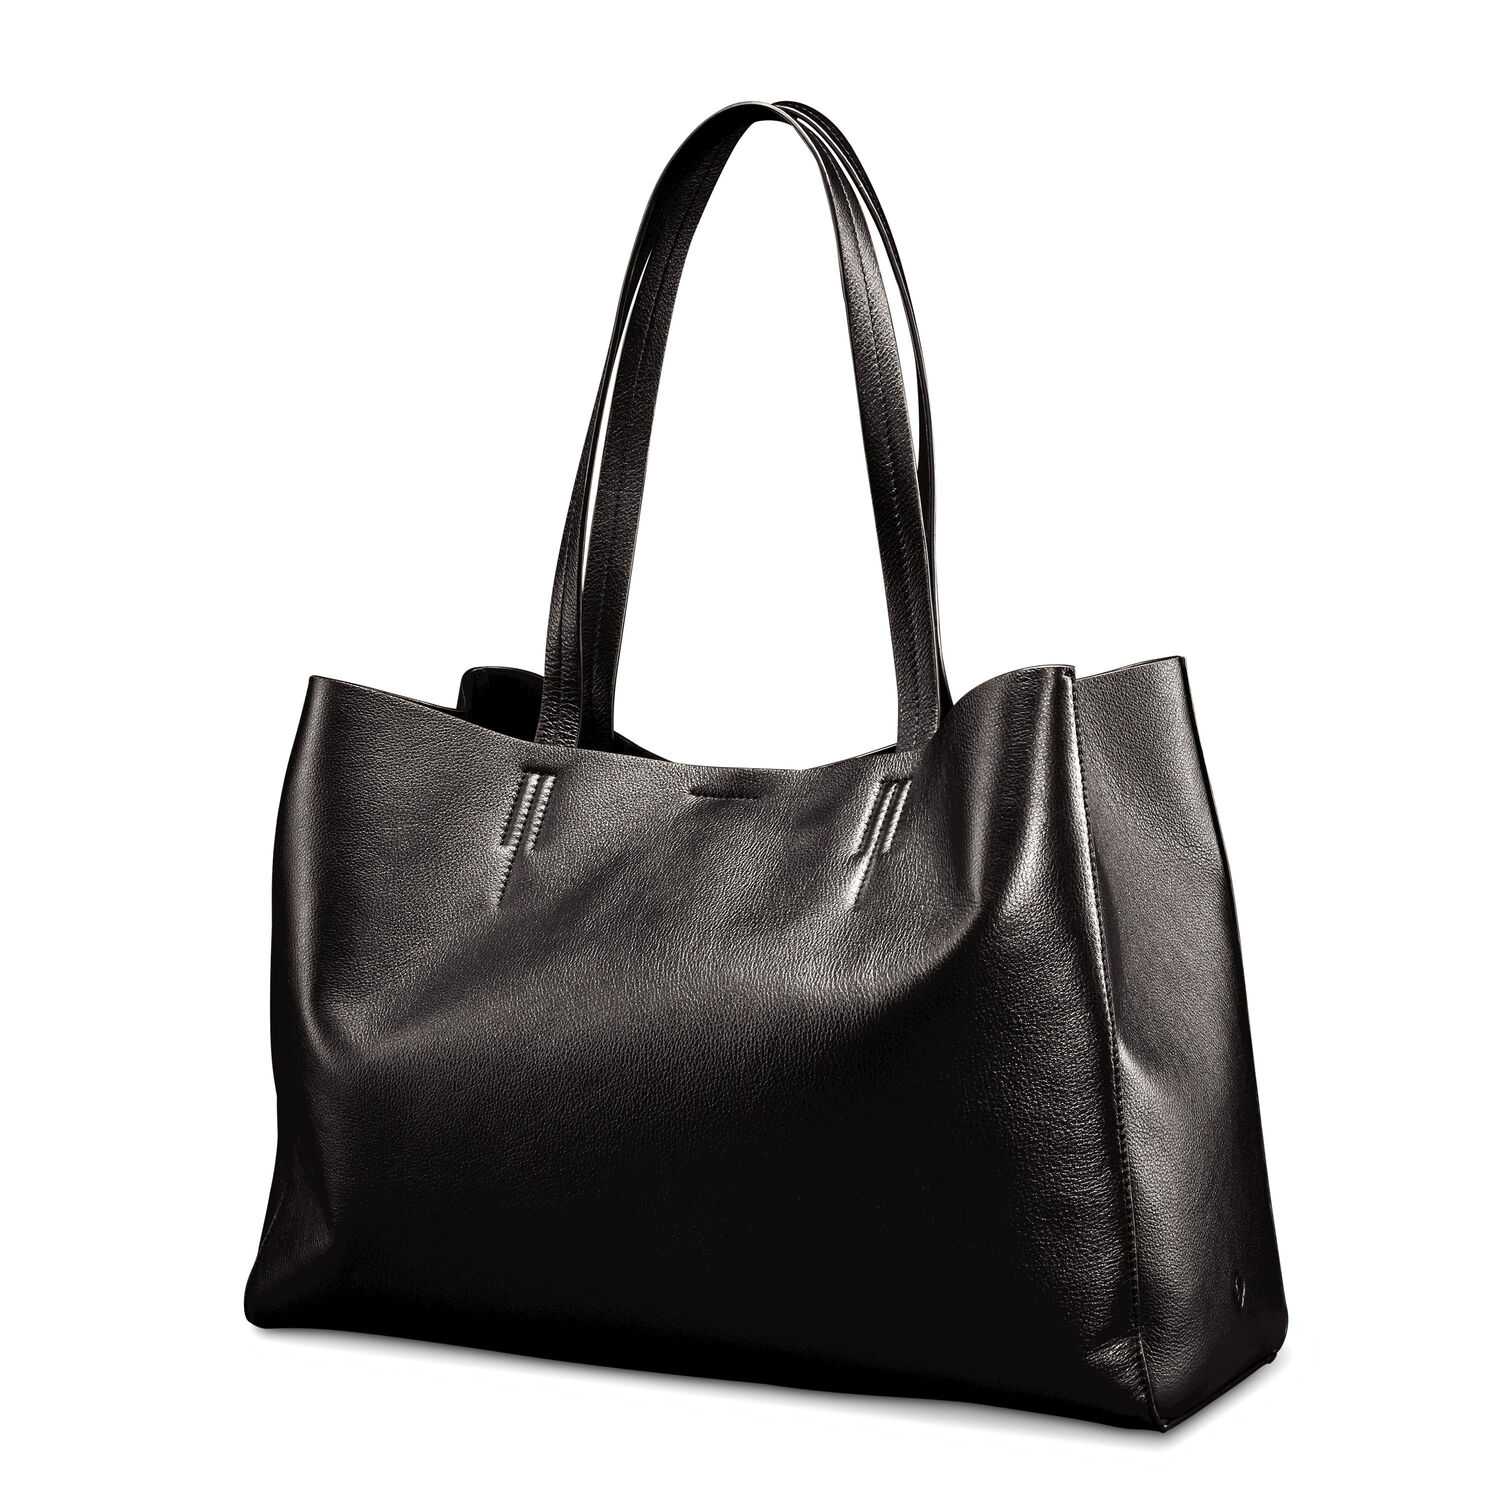 business bags backpacks and briefcases samsonite samsonite business leather tote in the color black